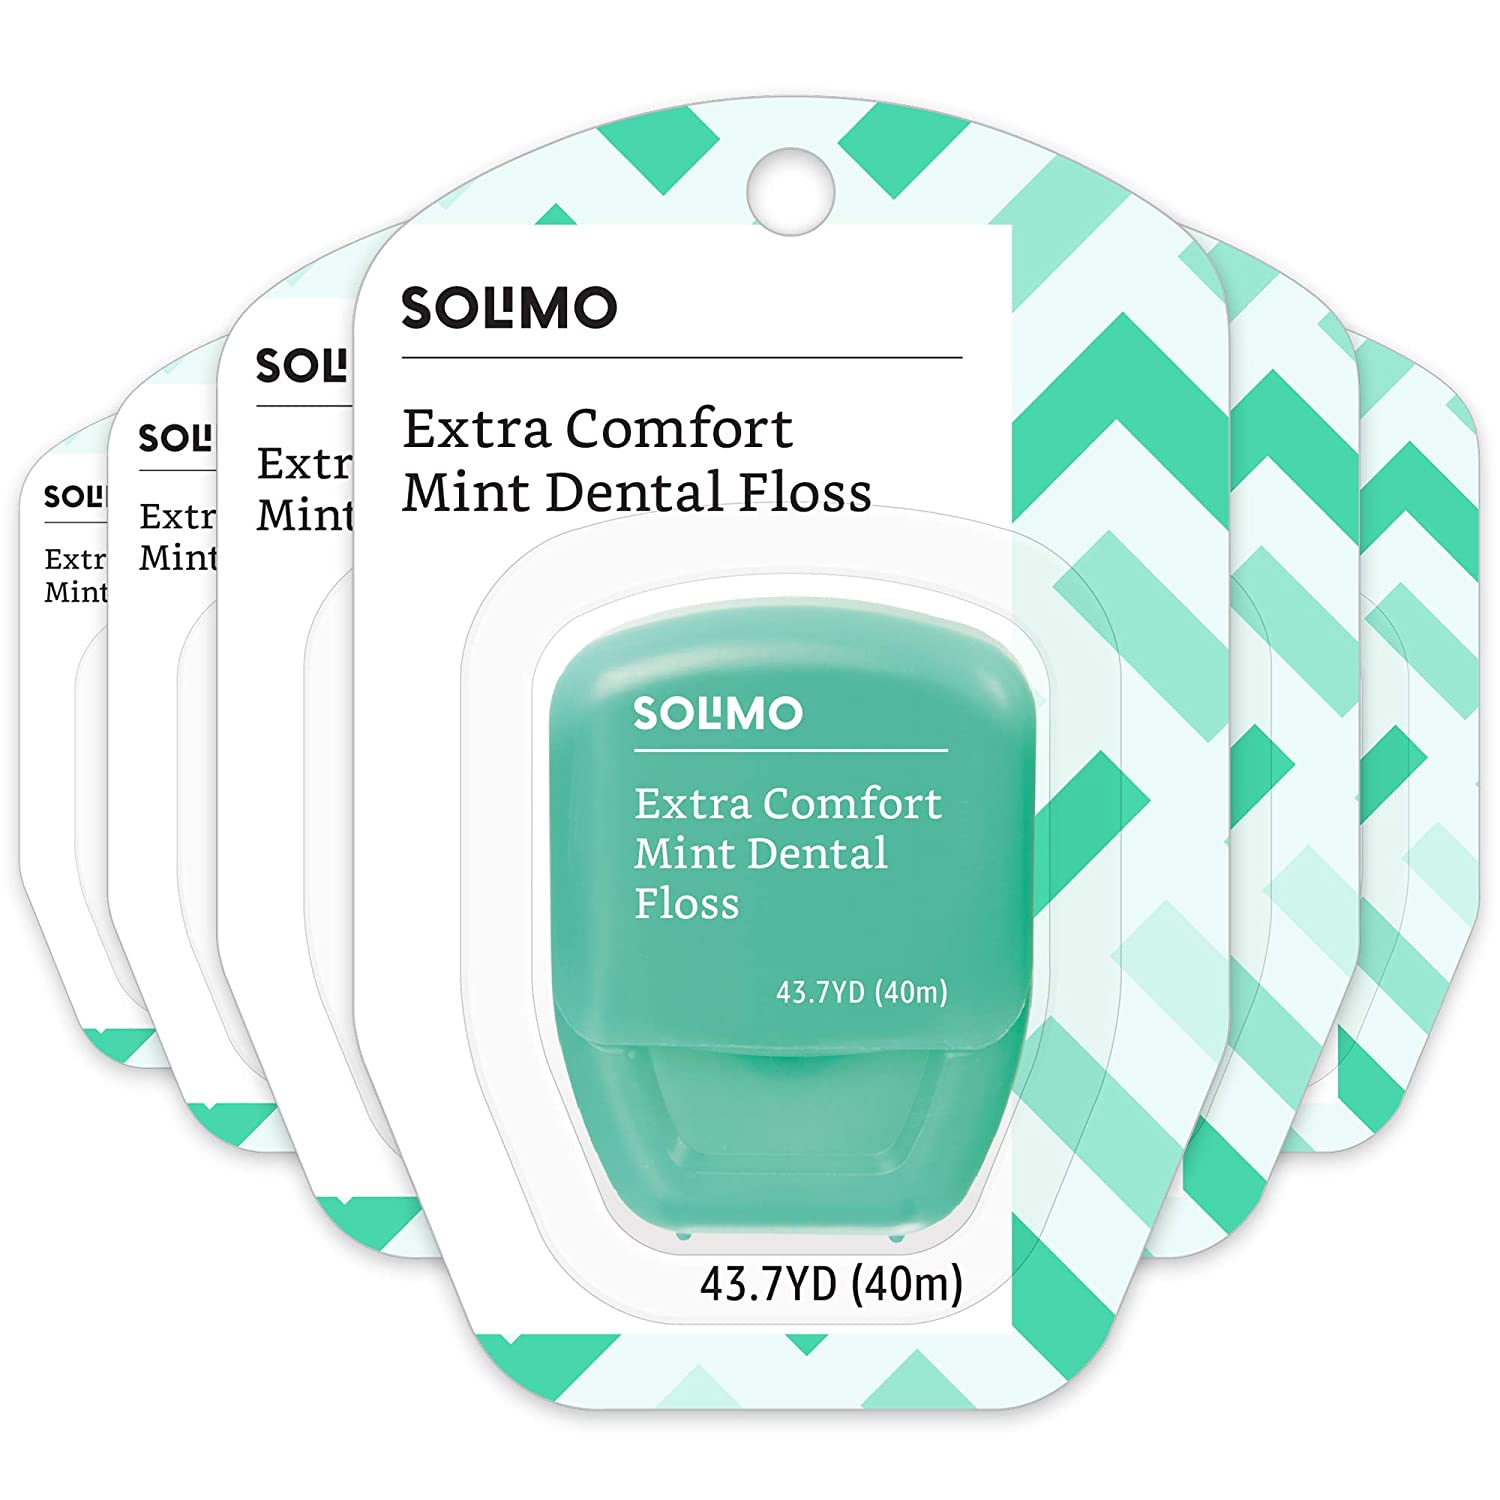 Amazon Brand - Solimo Extra Comfort Mint Dental Floss, 40 M (Pack of 6) Amazon.com Services Inc.